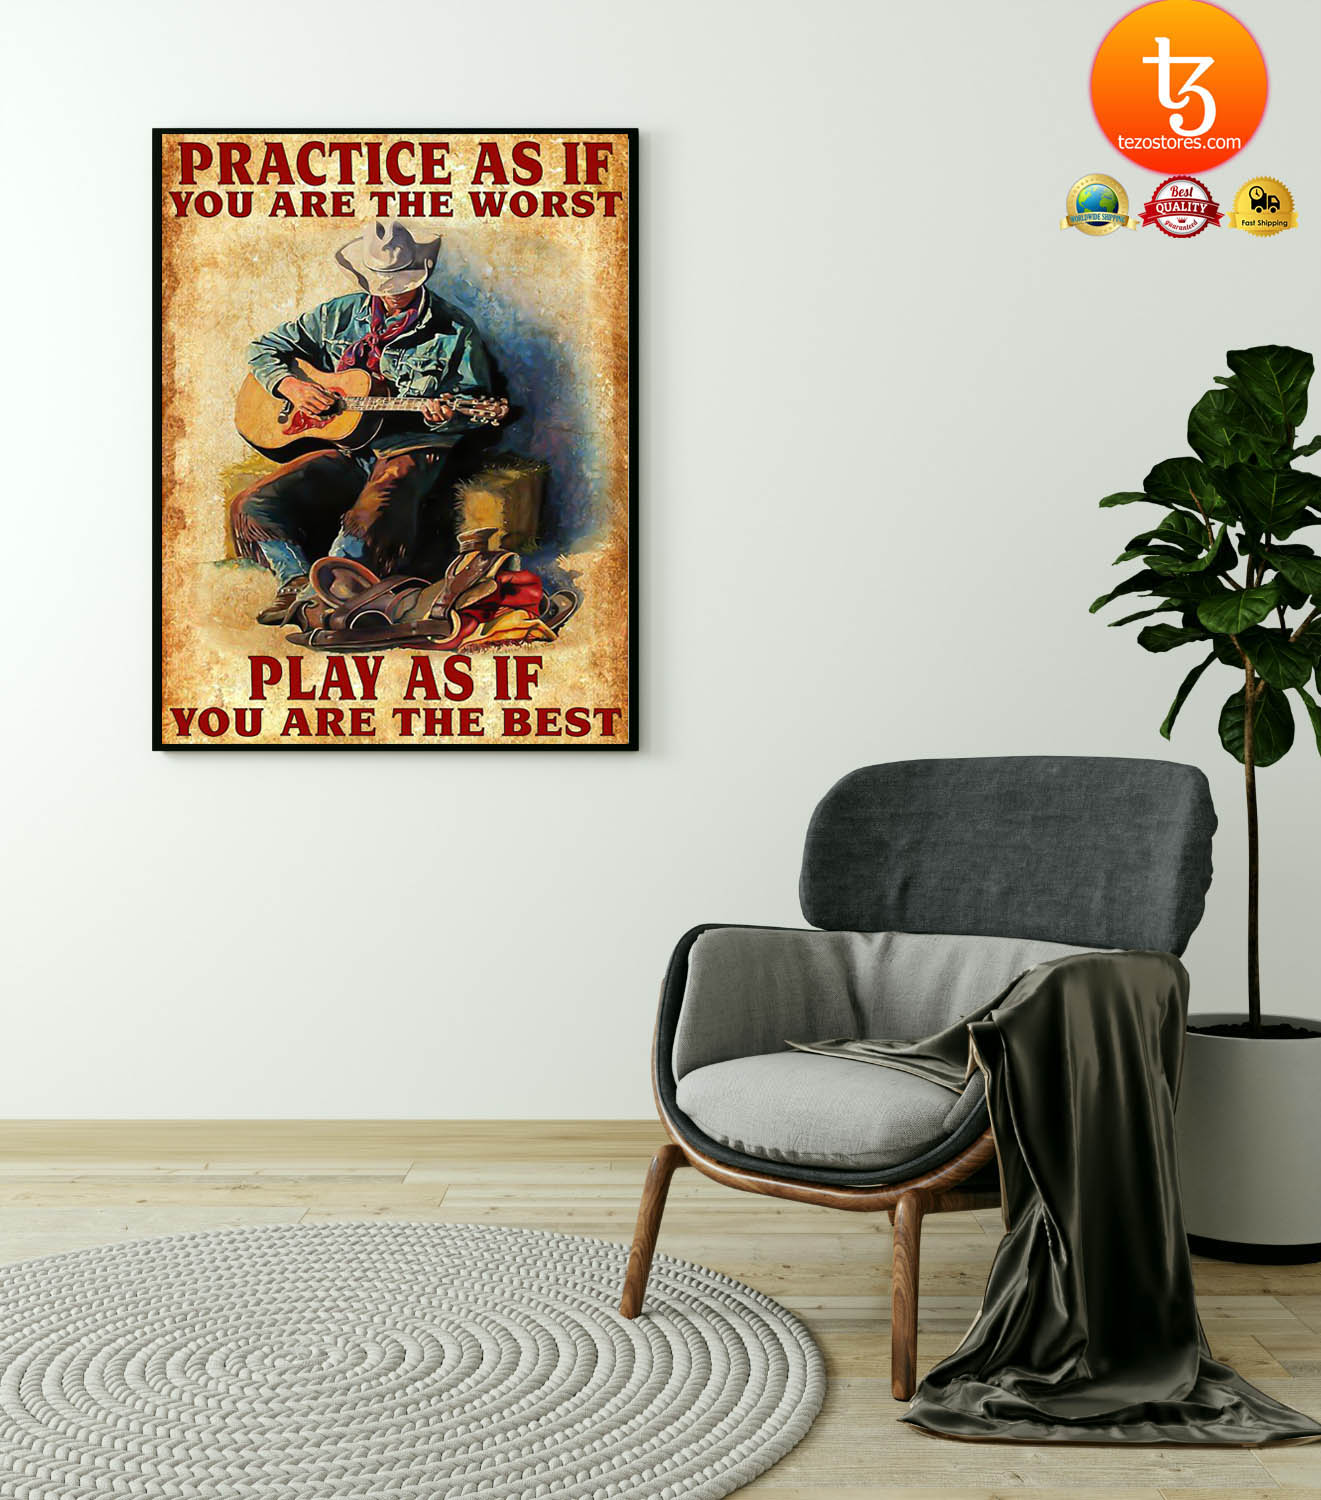 Guitar Practice as if you are the worst play as if you are the best poster 4